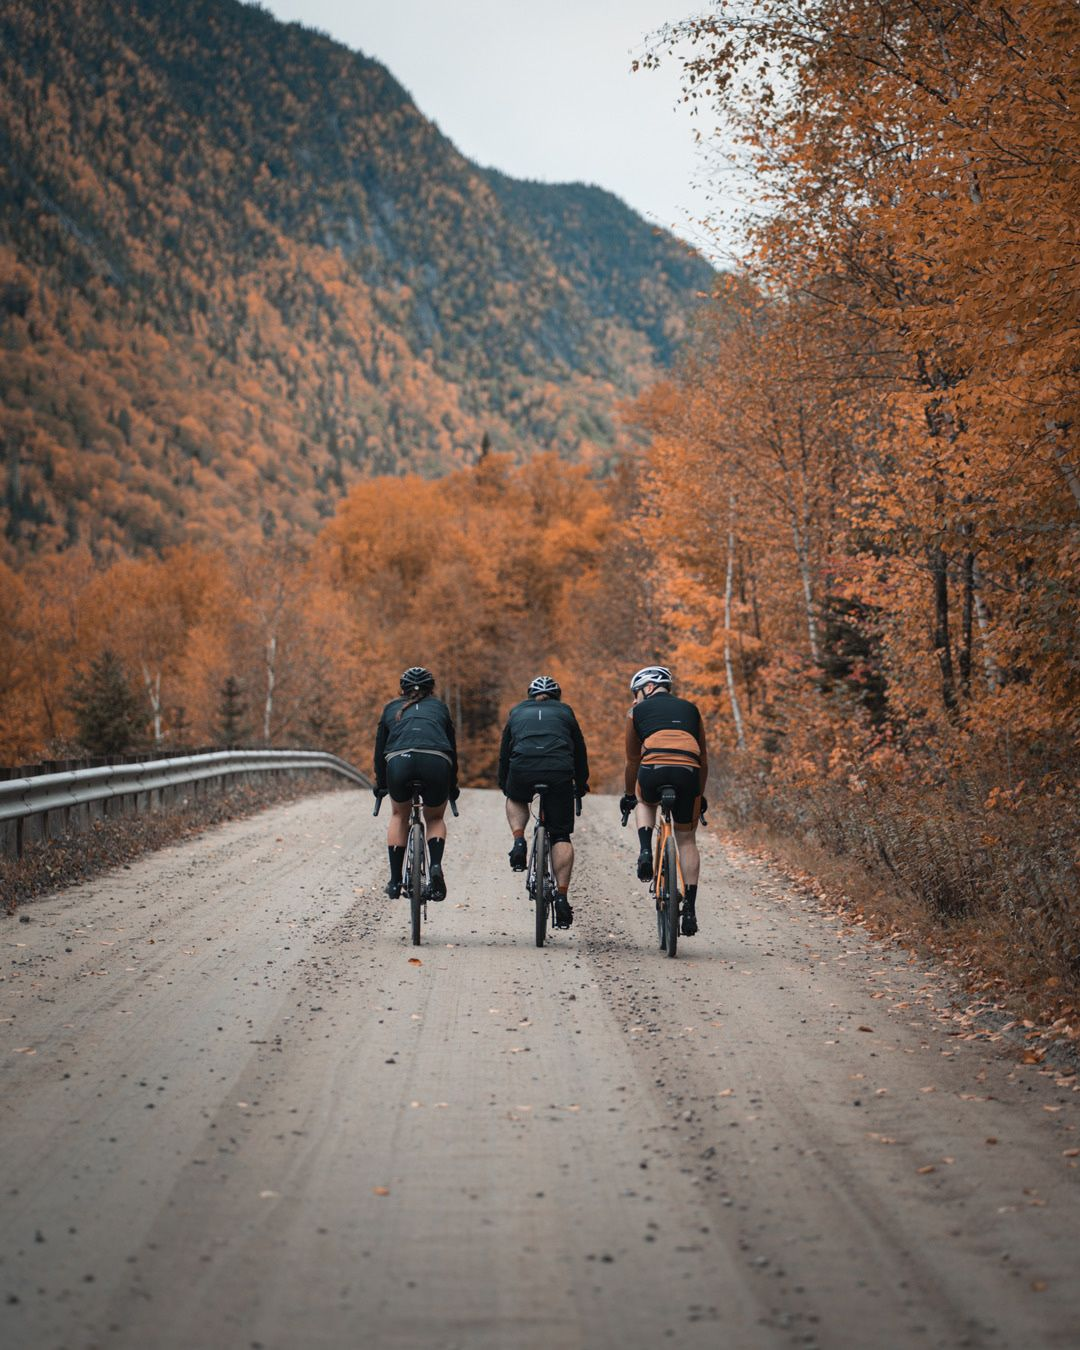 trio of long distance bikers biking on dirt road side by side with mountains covered in orange colored trees in the background for Spring Summer 2020 campaign of Louis Garneau with artistic direction and styling by Studio TB